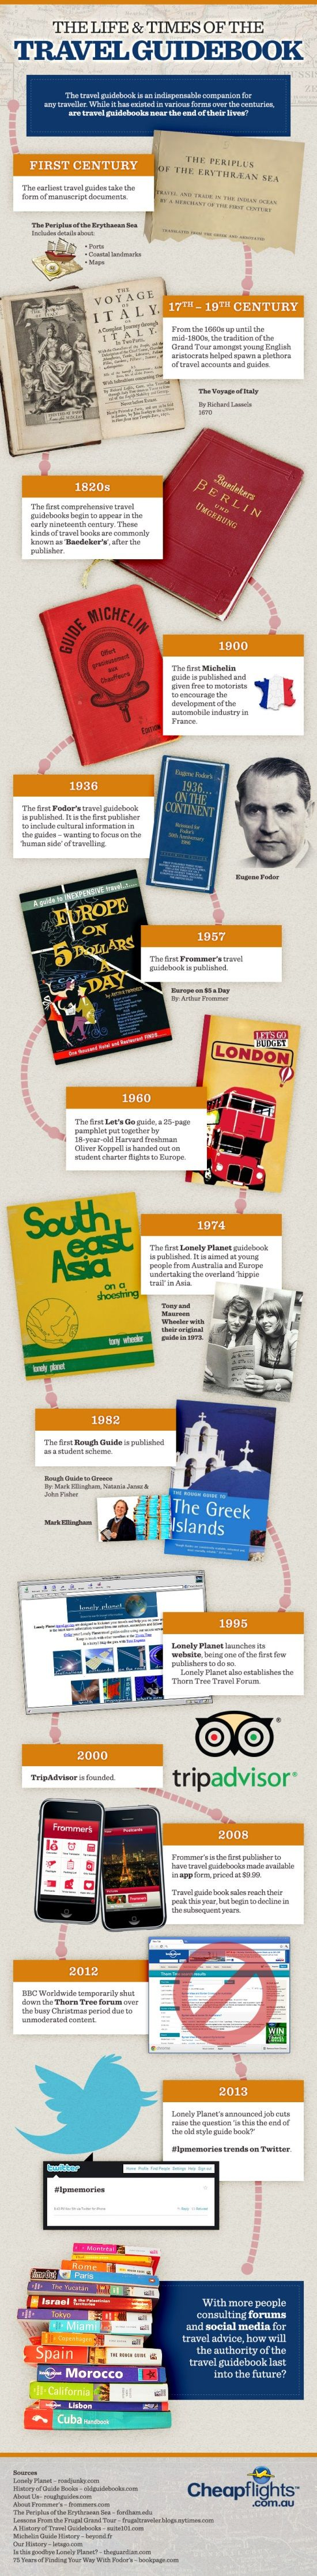 Infographic History of the Travel Guide http://www.cheapflights.com.au/travel/travel-guide-book-infographic/